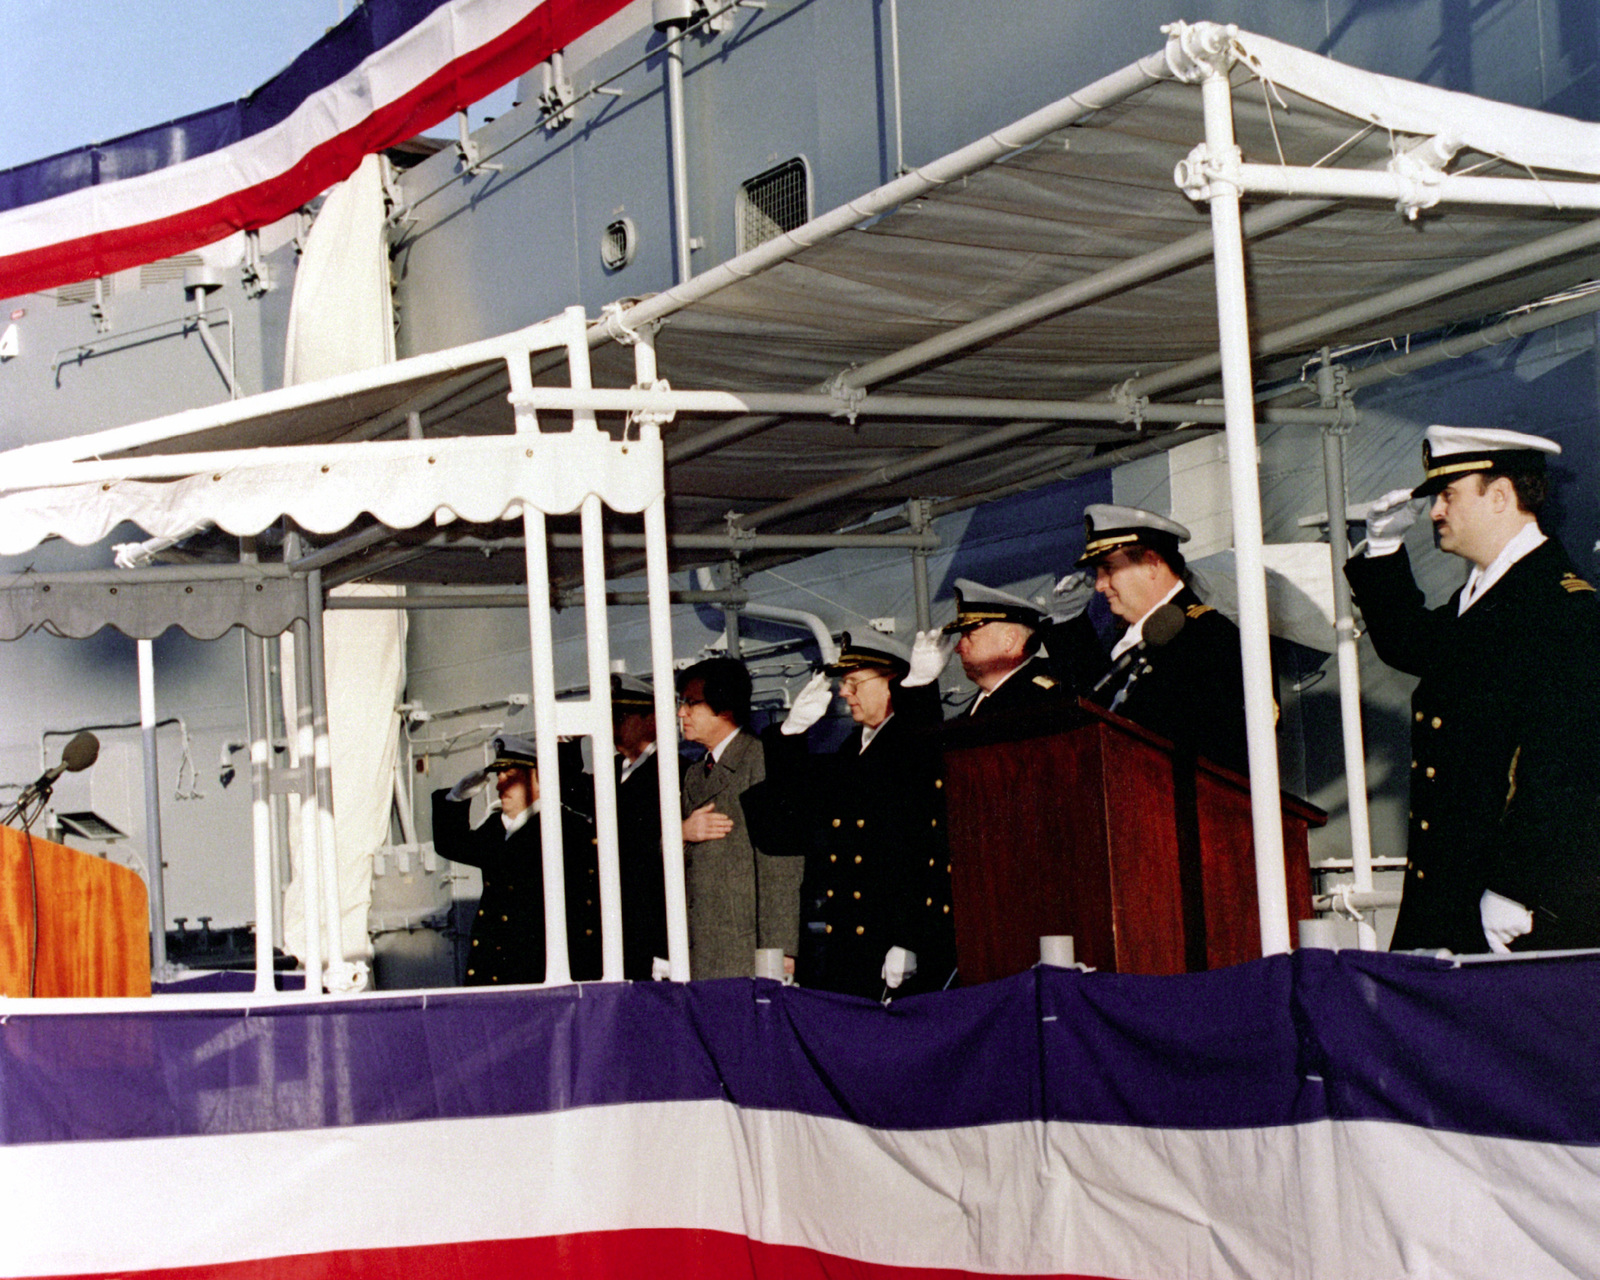 Distinguished guests honor the flag during the commissioning of the guided missile frigate USS DE WERT (FFG-45)